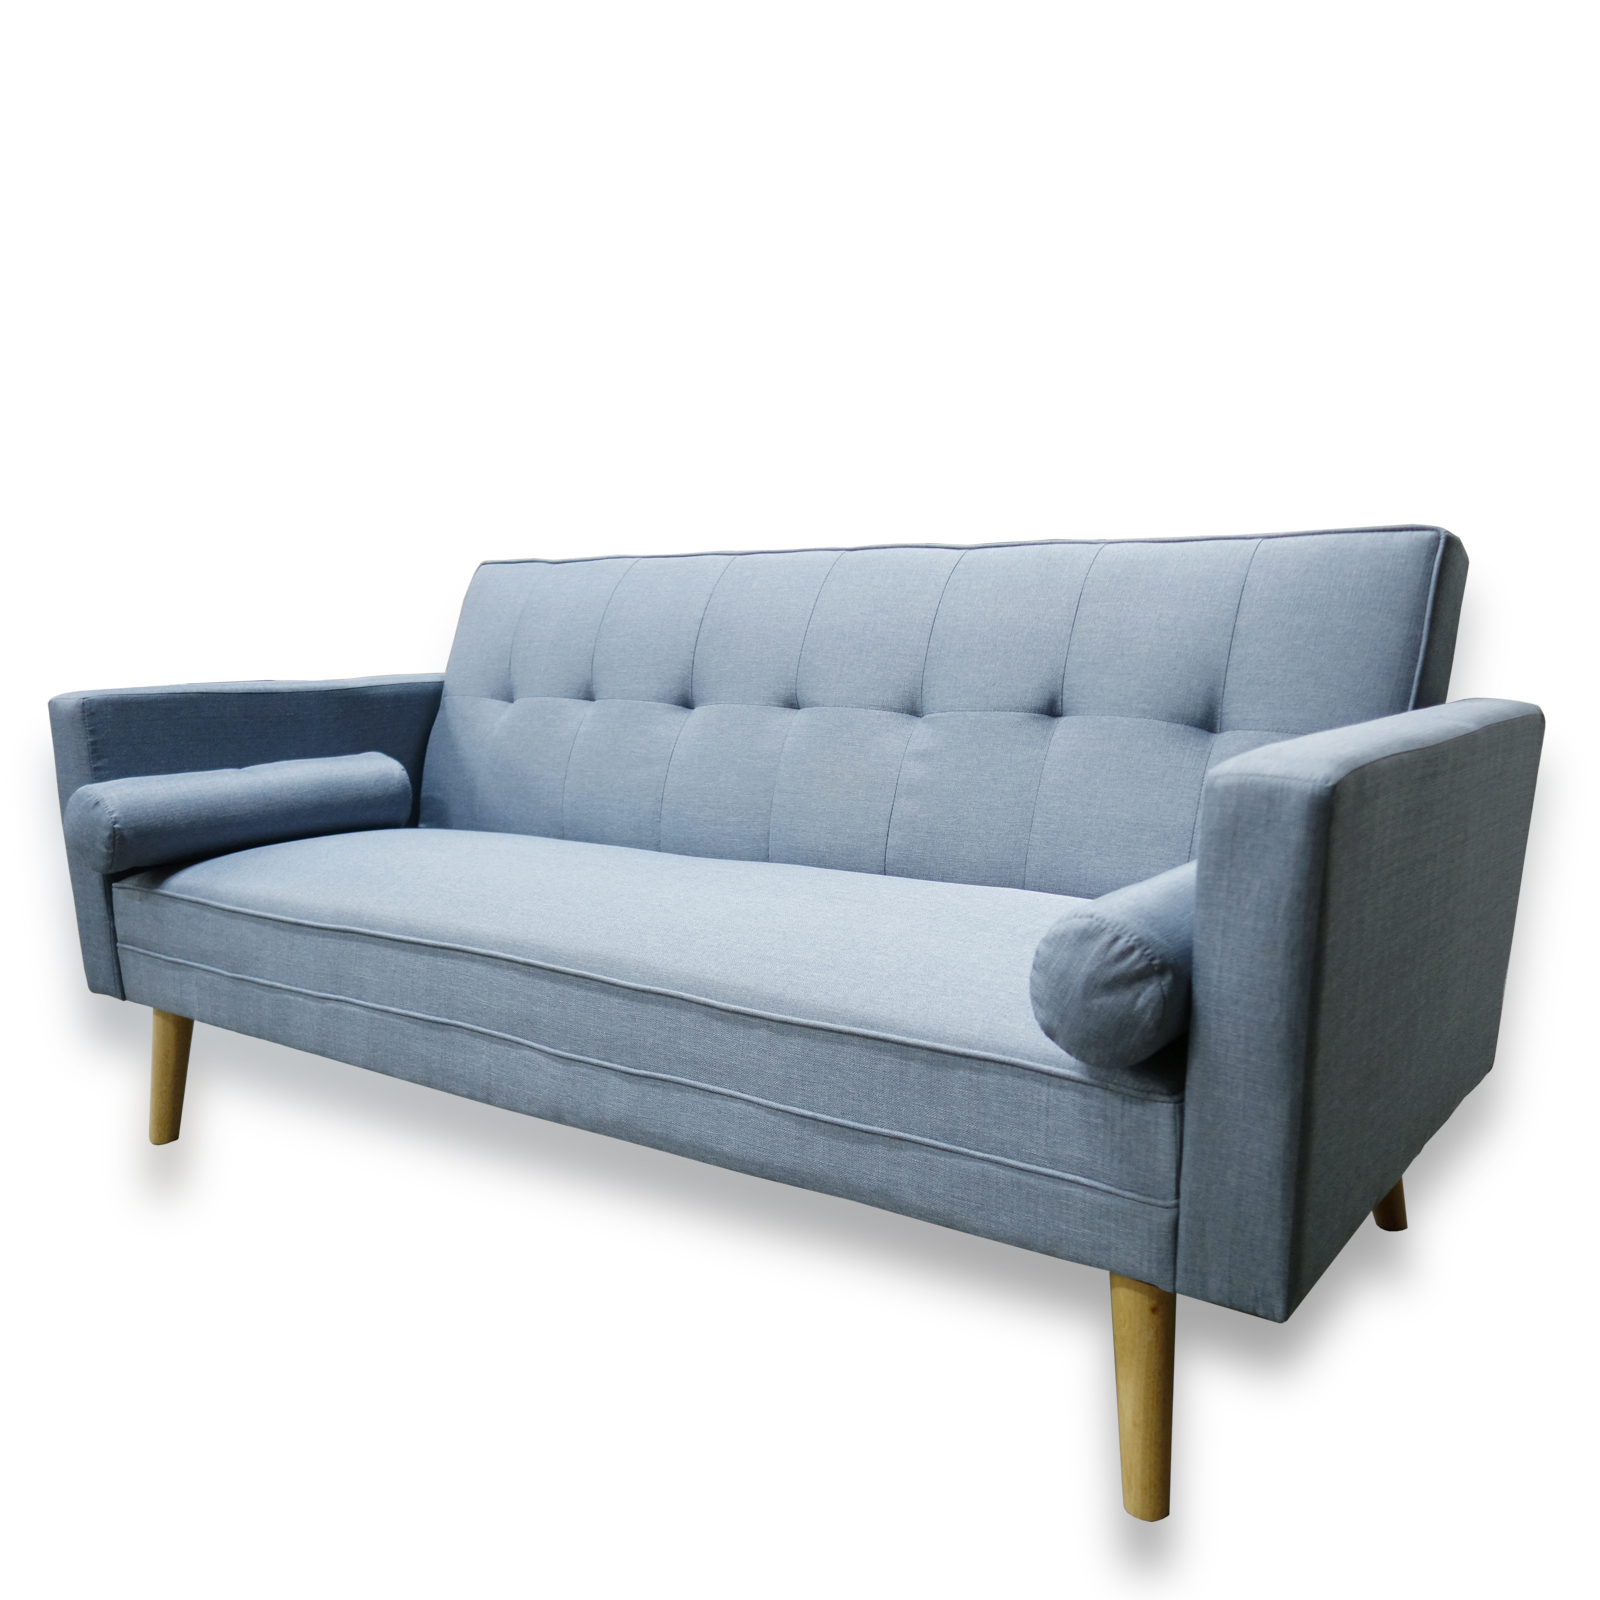 Amy brand new blue or grey fabric click clack sofa bed for Flip down sofa bed